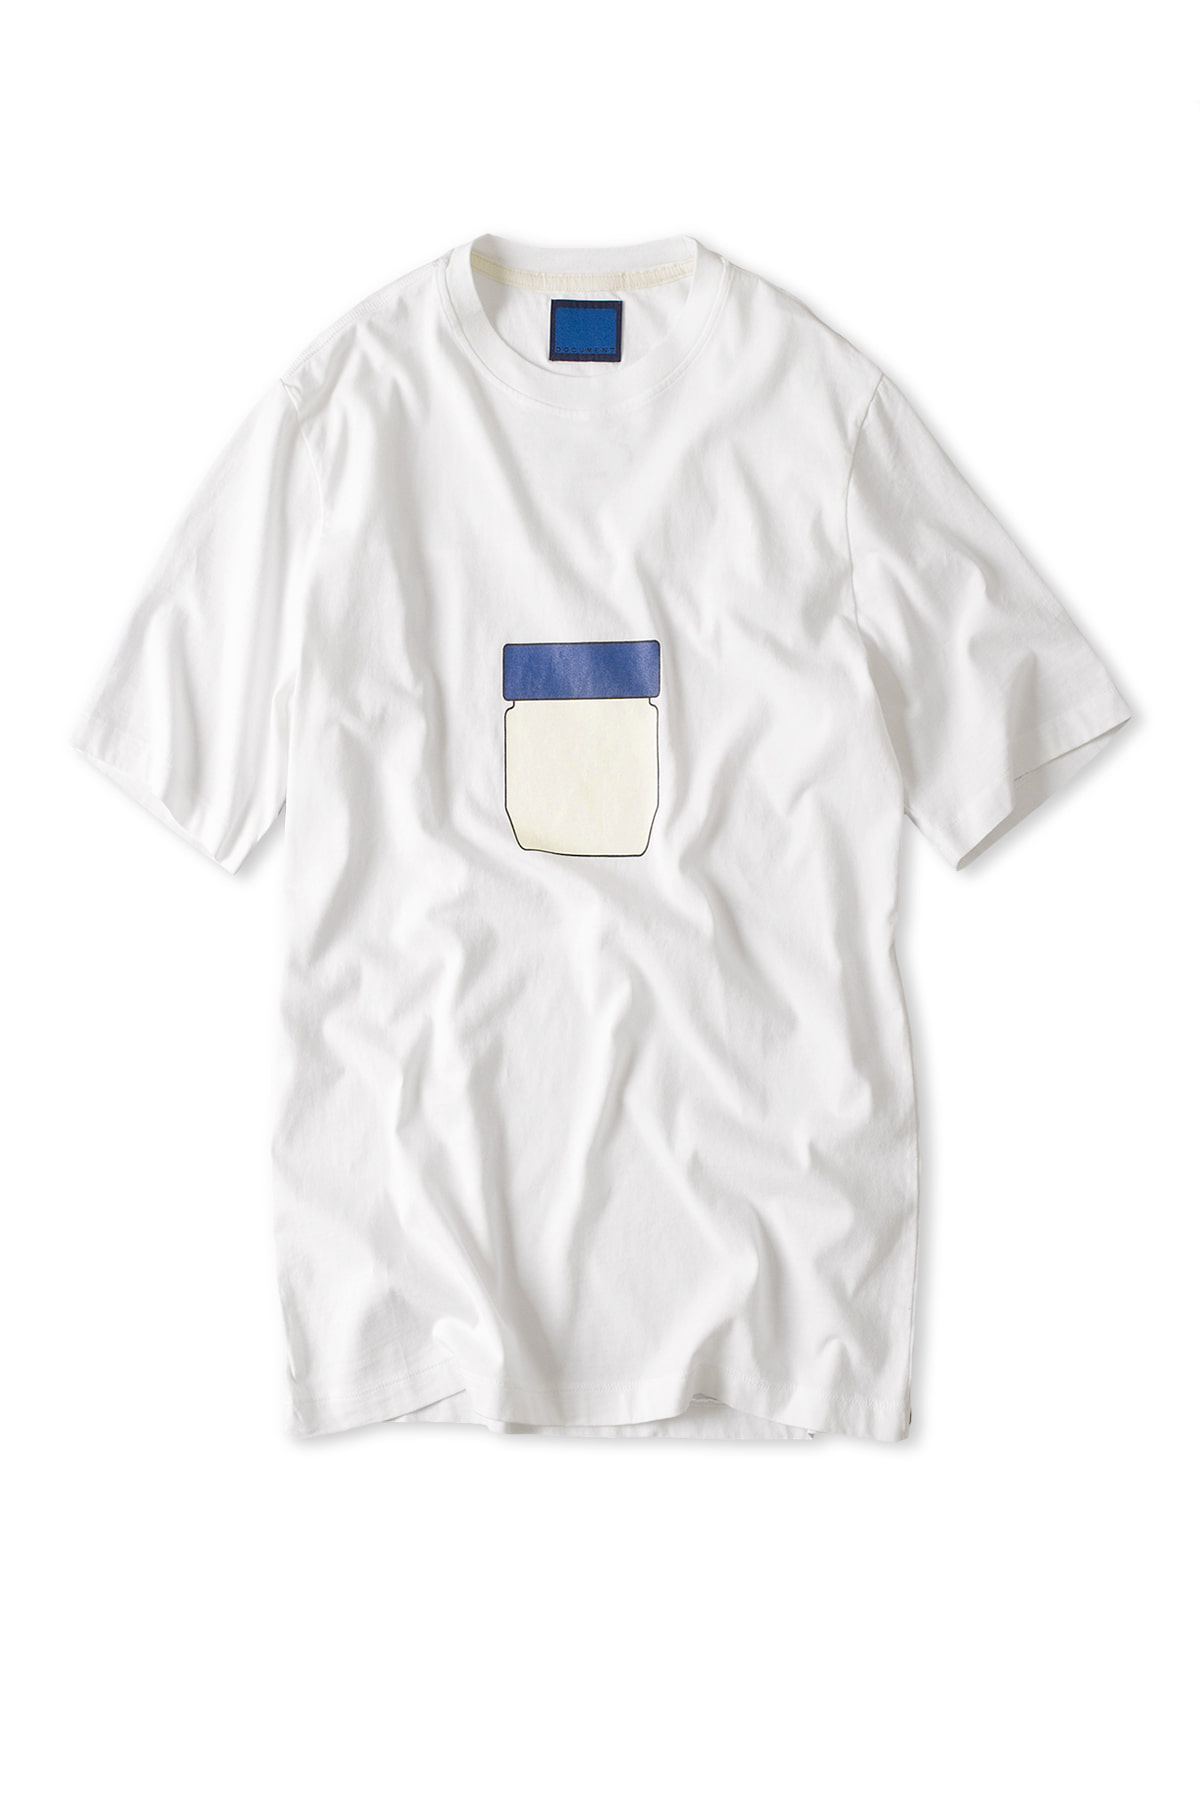 Document : U69 VASELINE T-Shirt (White)